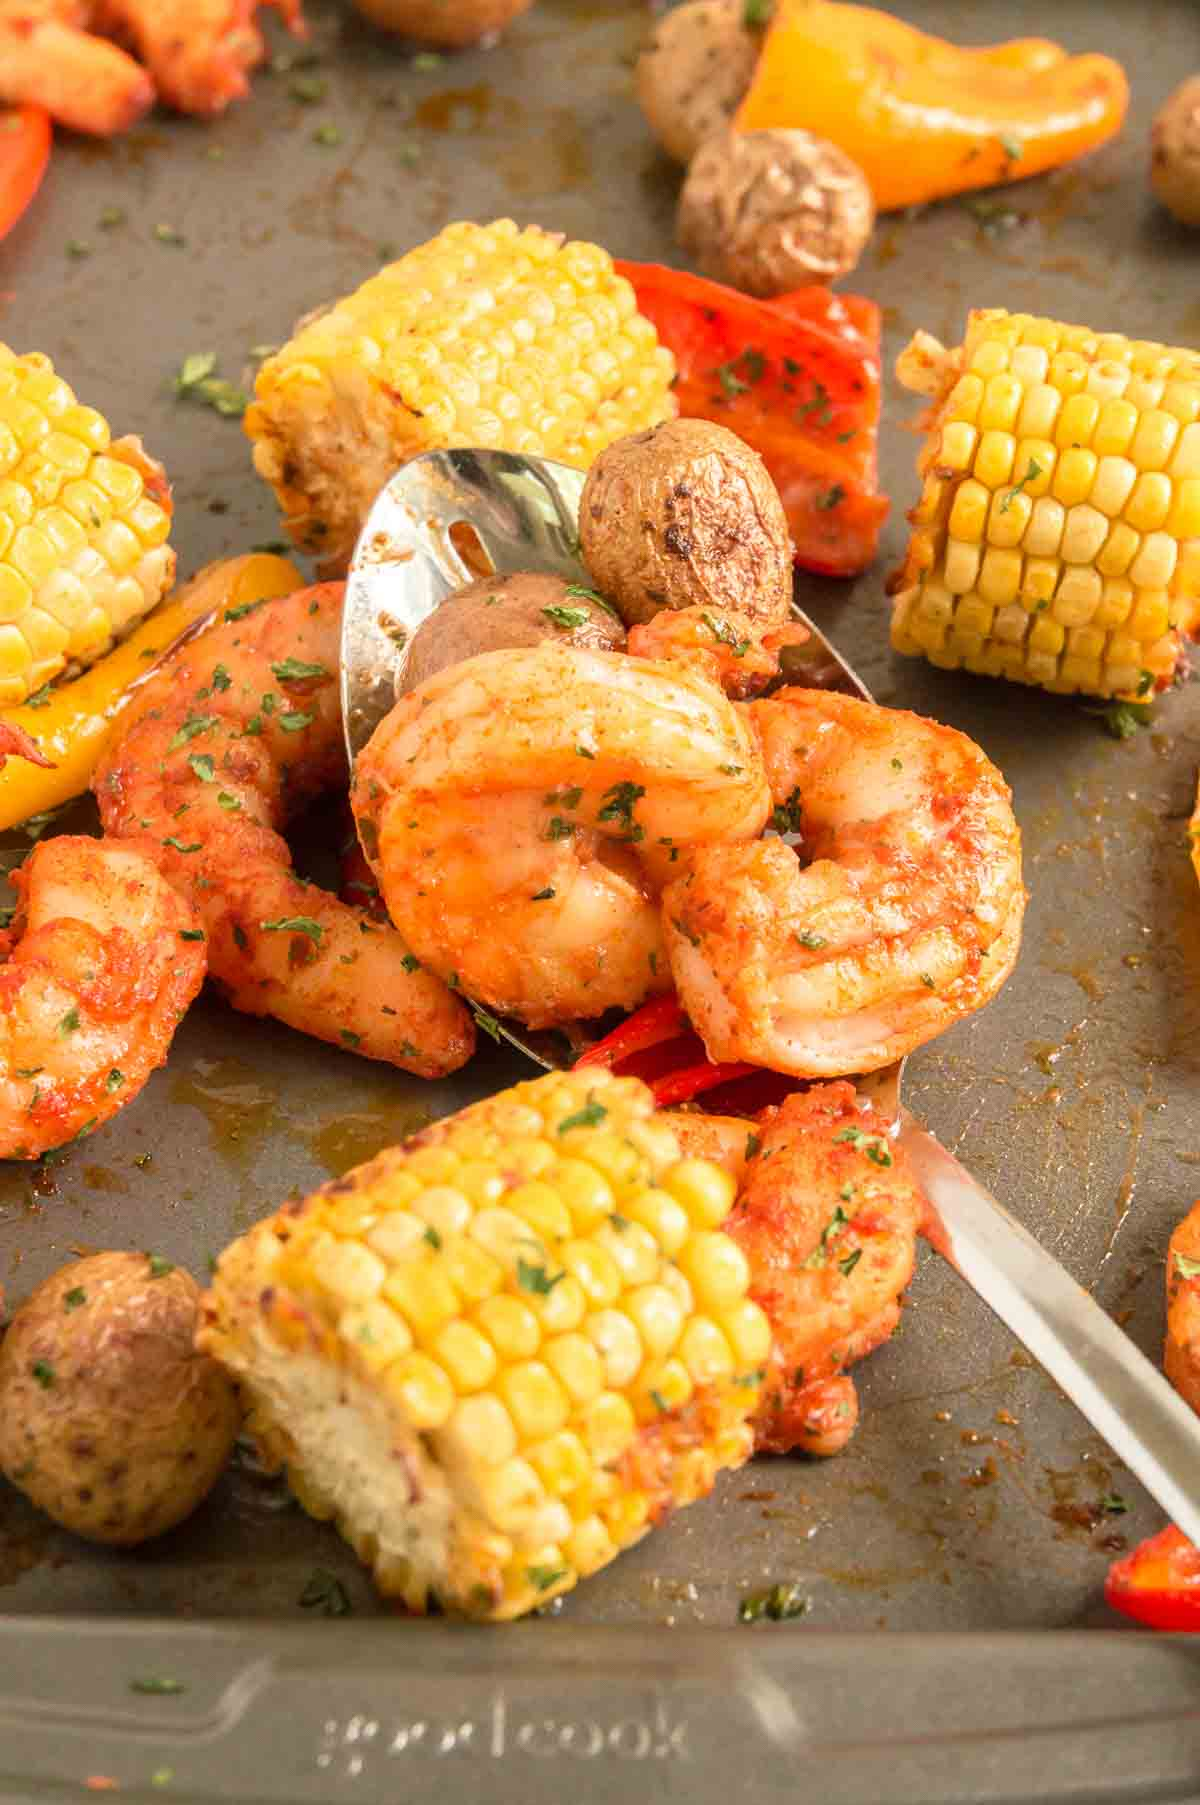 sheet pan filled with roasted corn, potatoes and shrimp